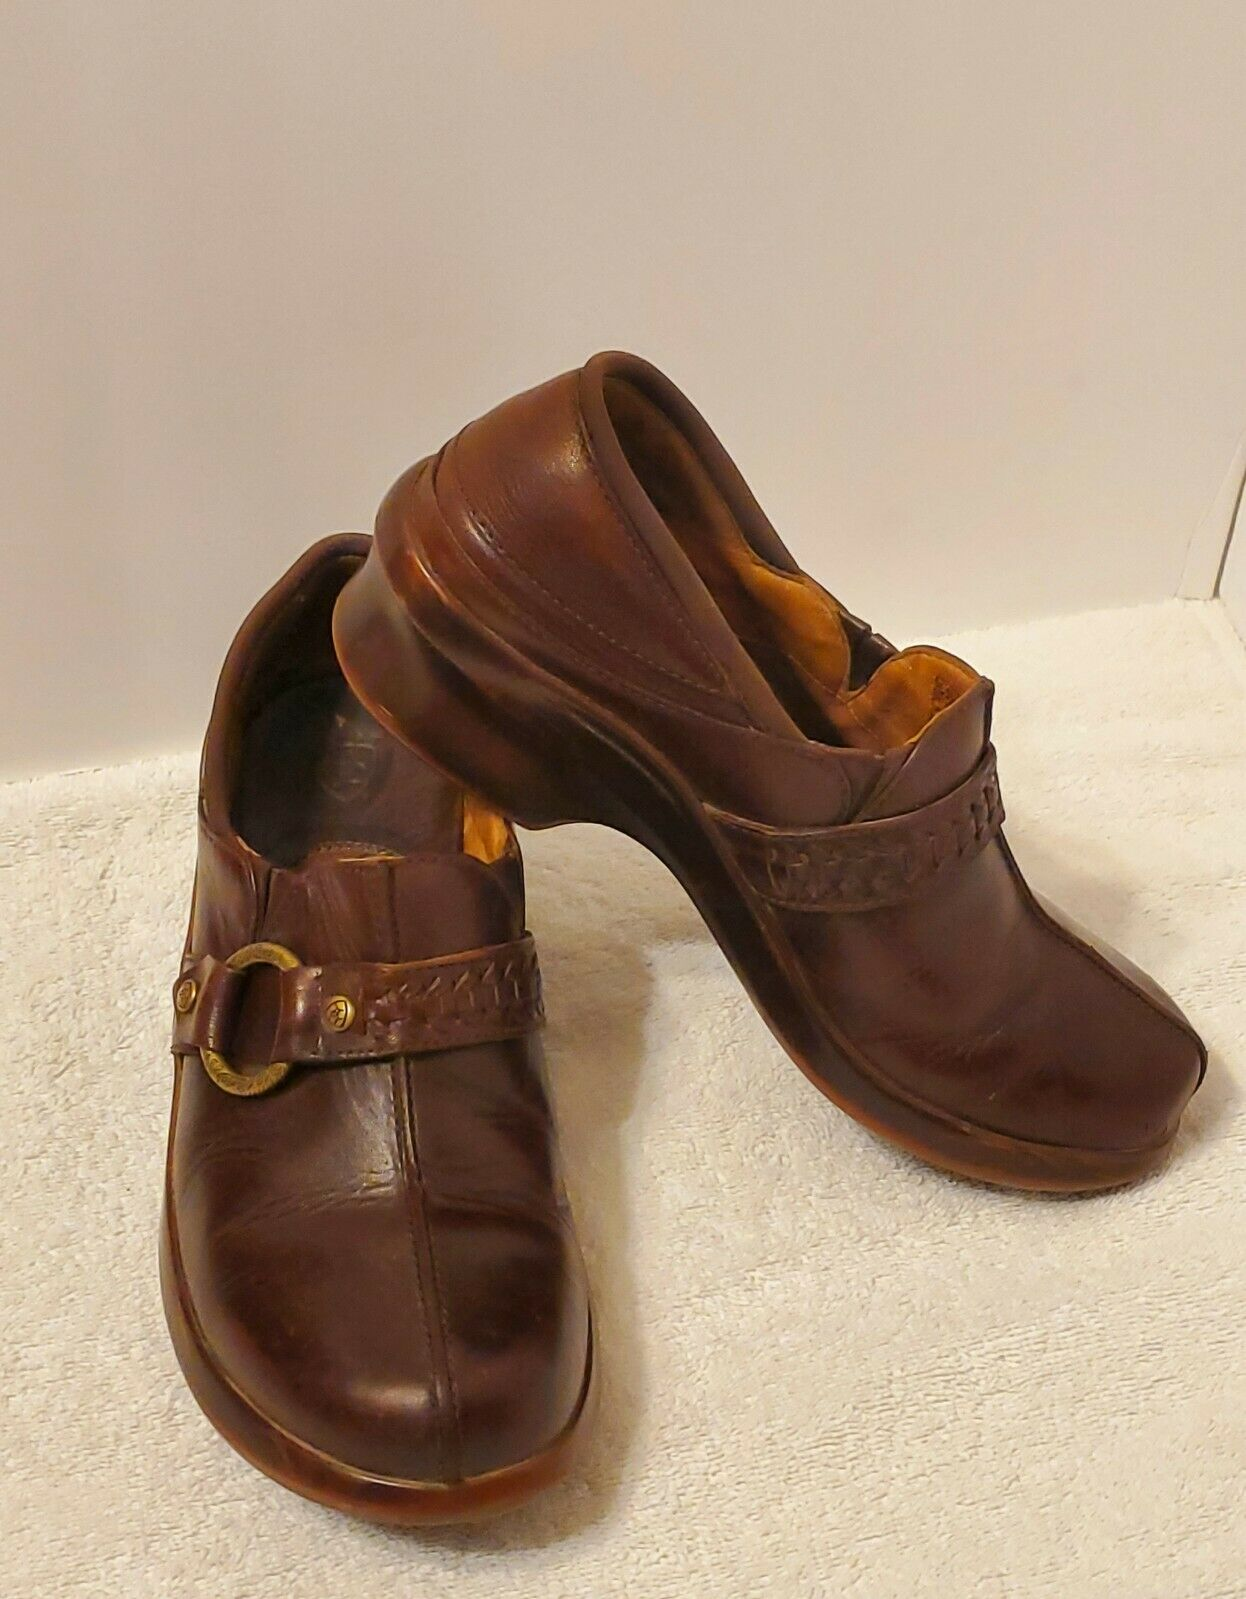 Ariat Brown Leather Braided Buckle Strap Womens 9.5B Slip-on Clog Shoes #94317